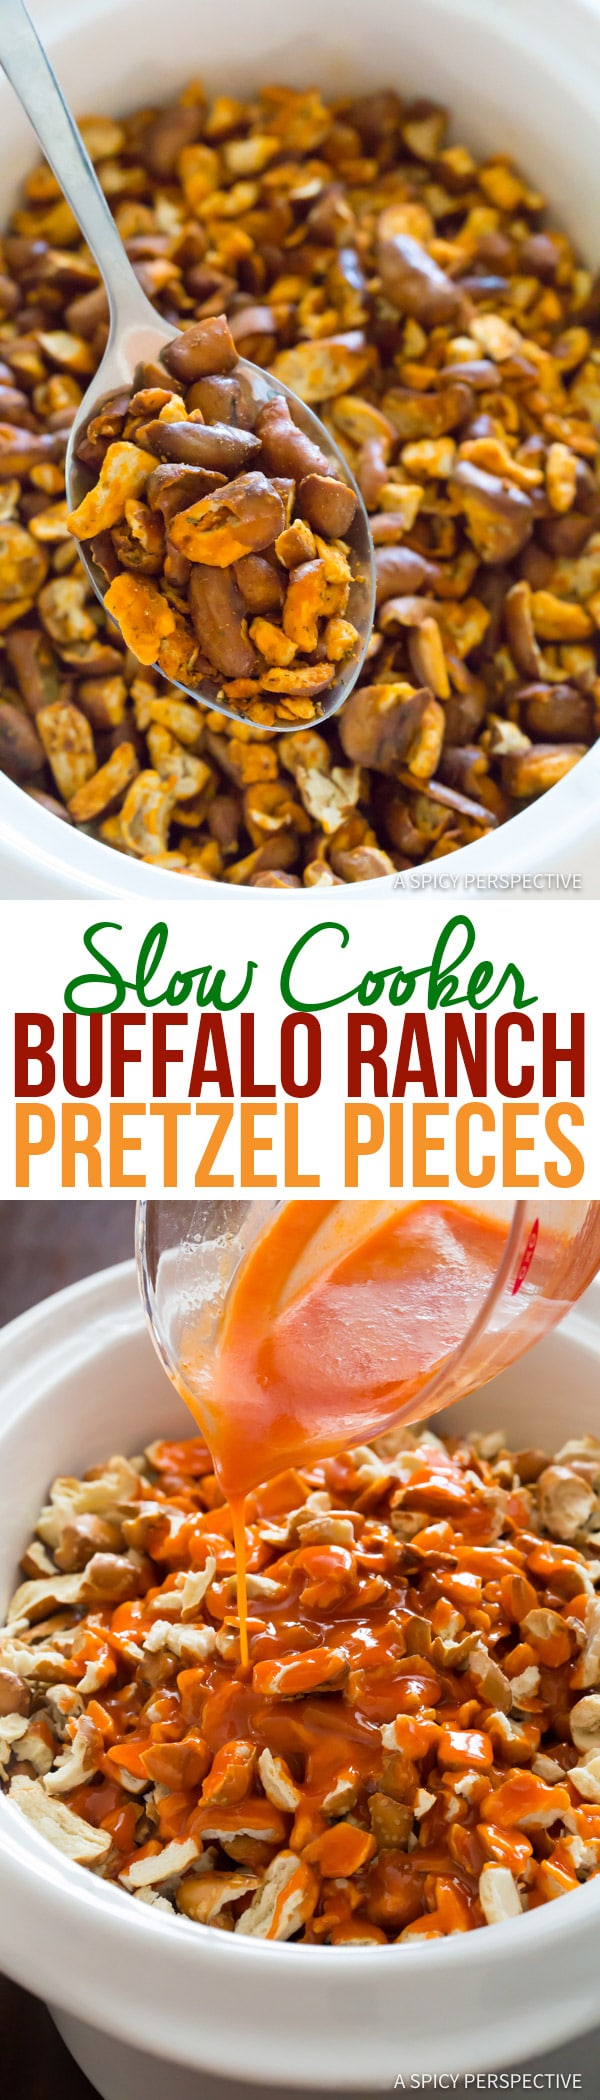 4-Ingredient Slow Cooker Buffalo Ranch Pretzel Pieces (+Oven Instructions) | ASpicyPerspective.com